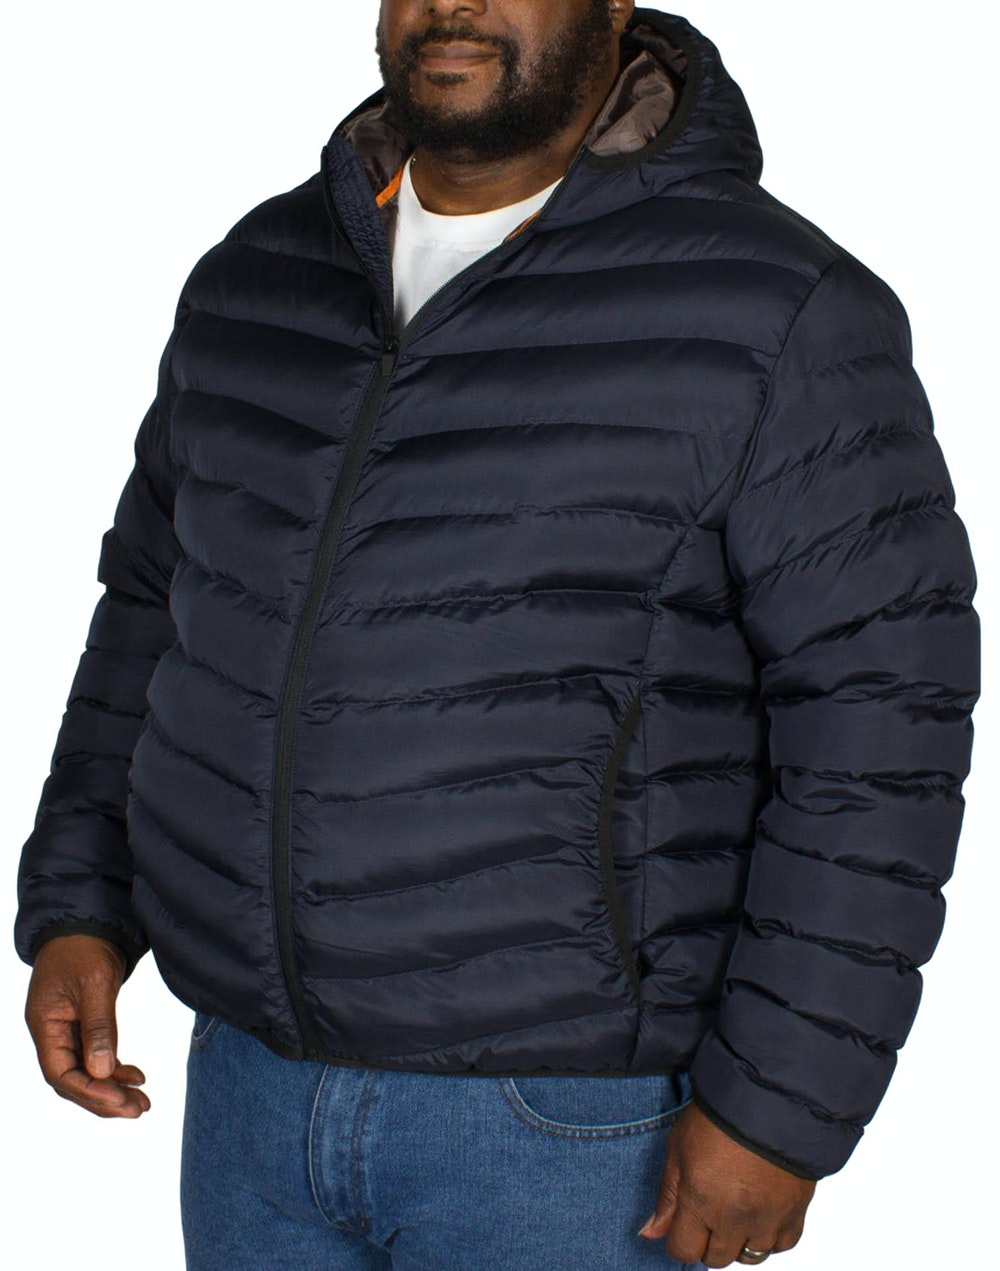 Bigdude Quilted Zip Through Jacket Navy